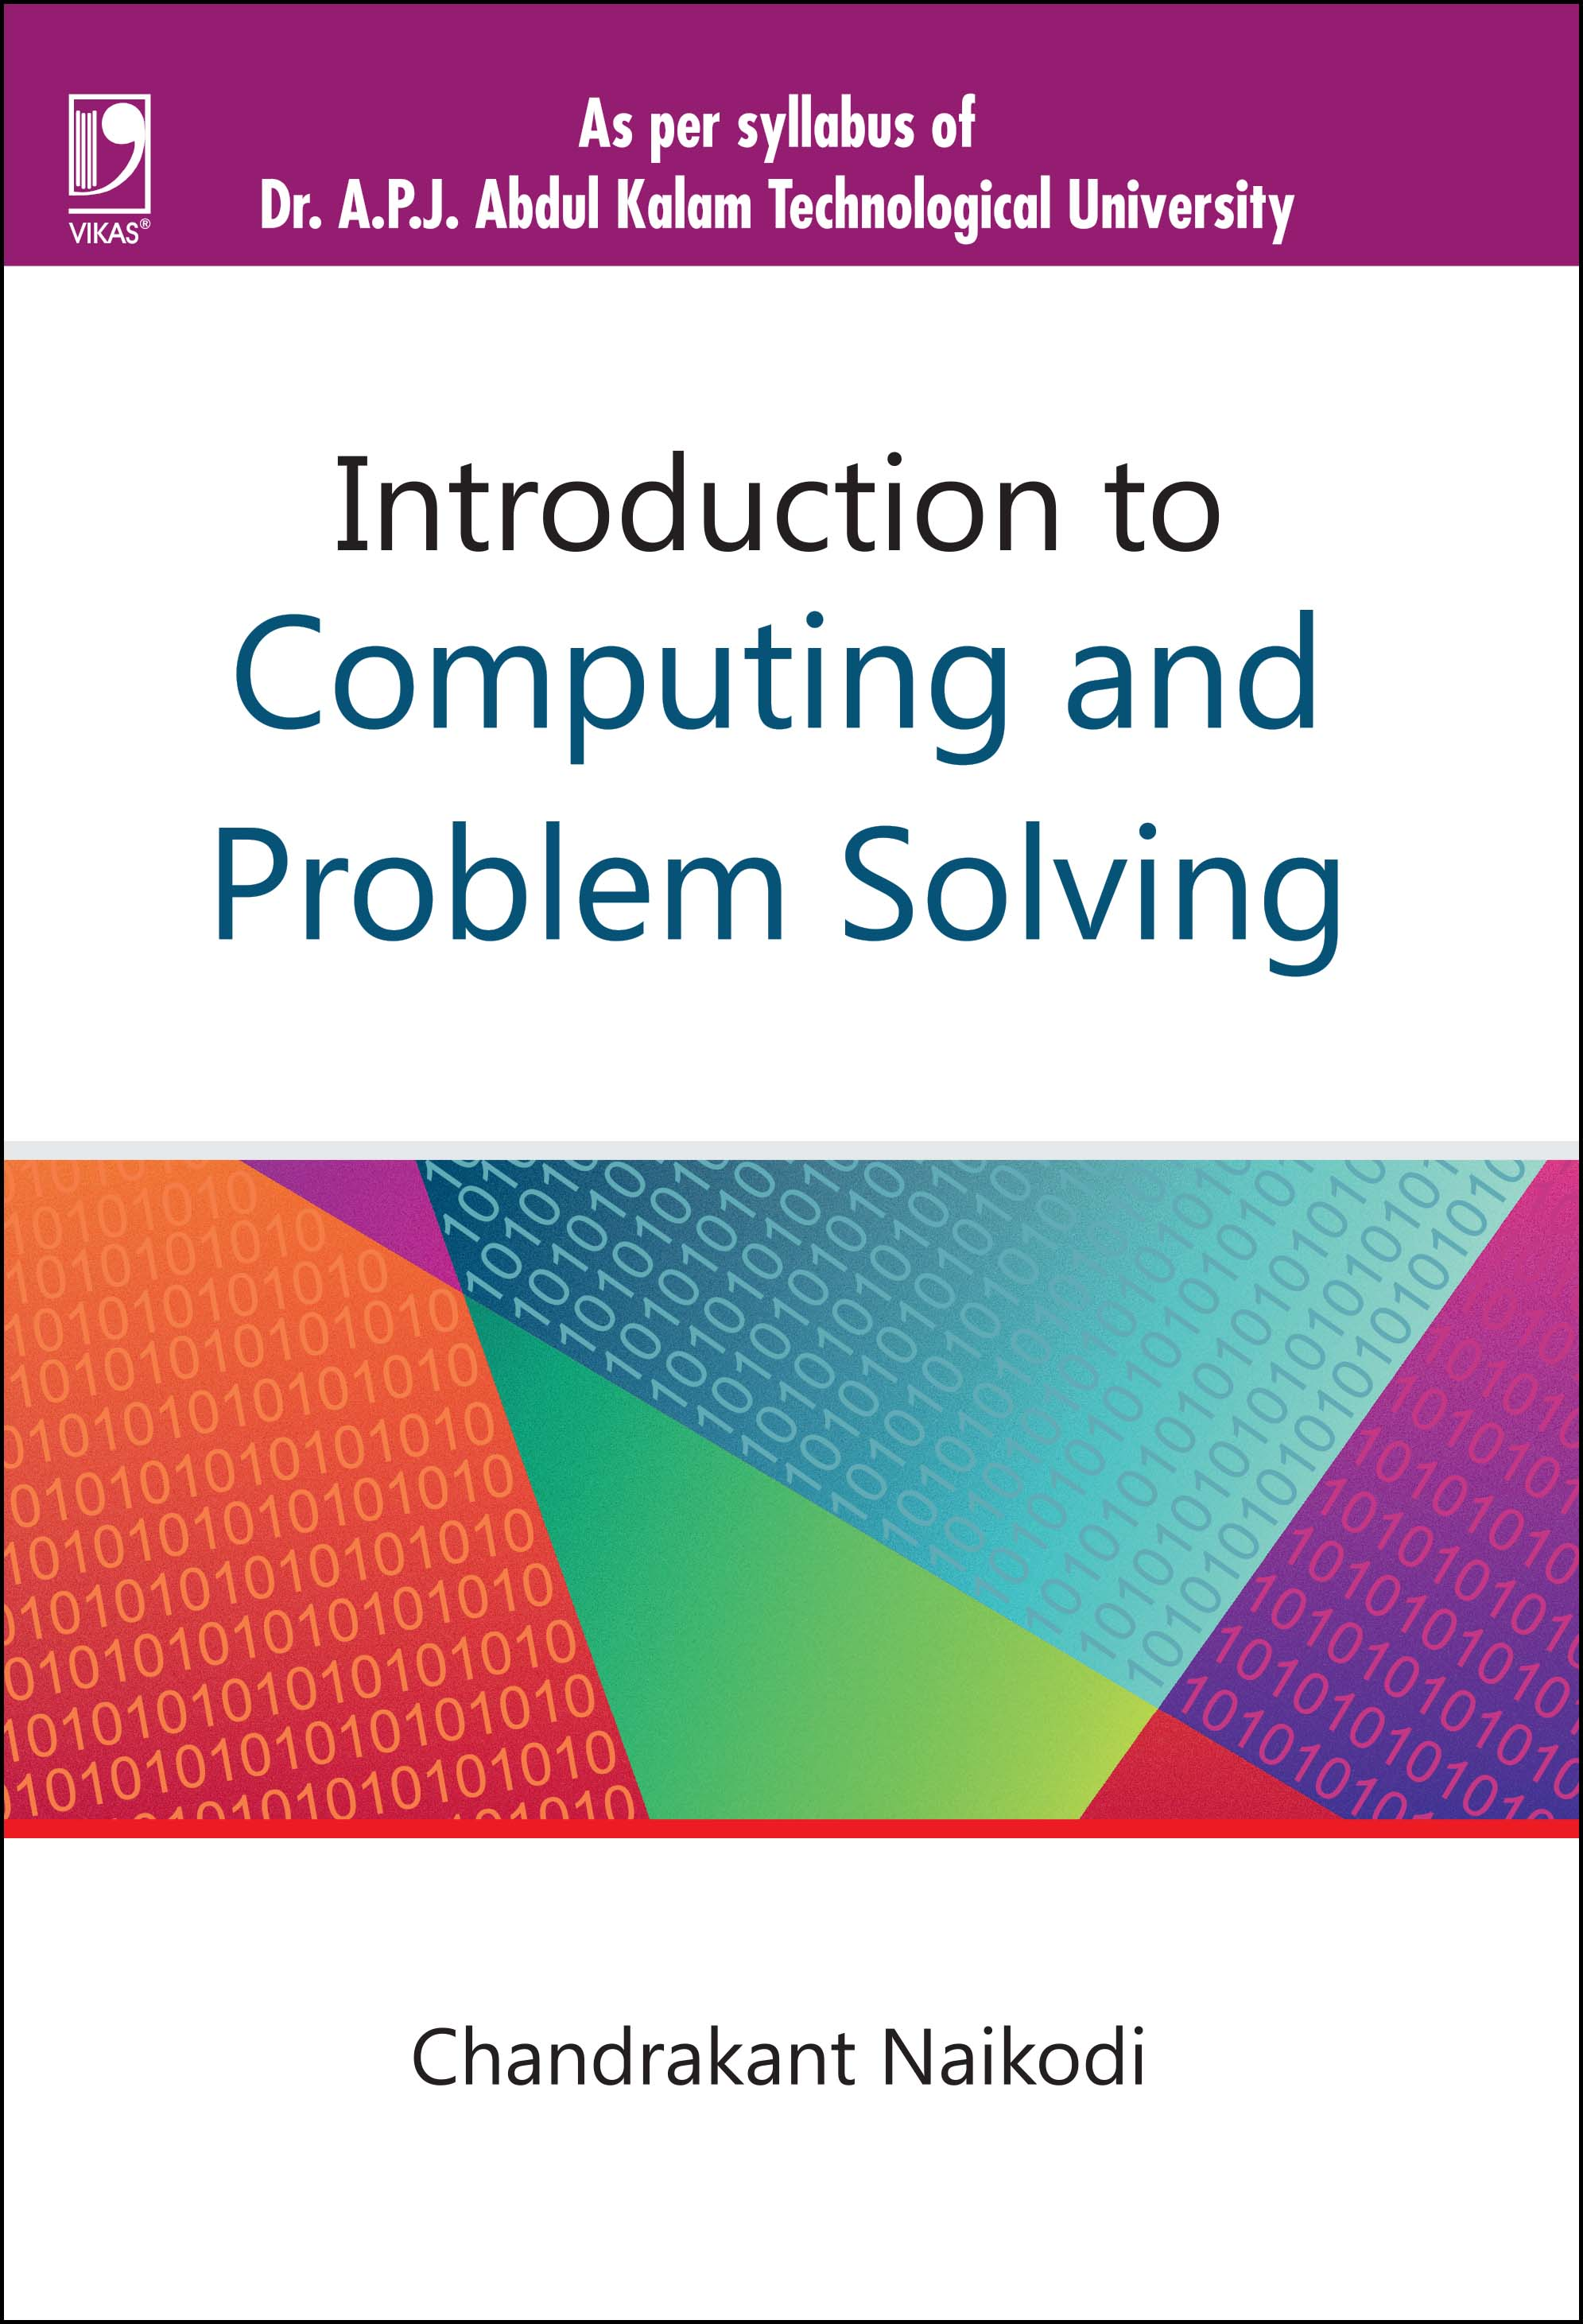 INTRODUCTION TO COMPUTING & PROBLEM SOLVING: (FOR KERALA TECHNICAL UNIVERSITY) by  DR. CHANDRAKANT NAIKODI